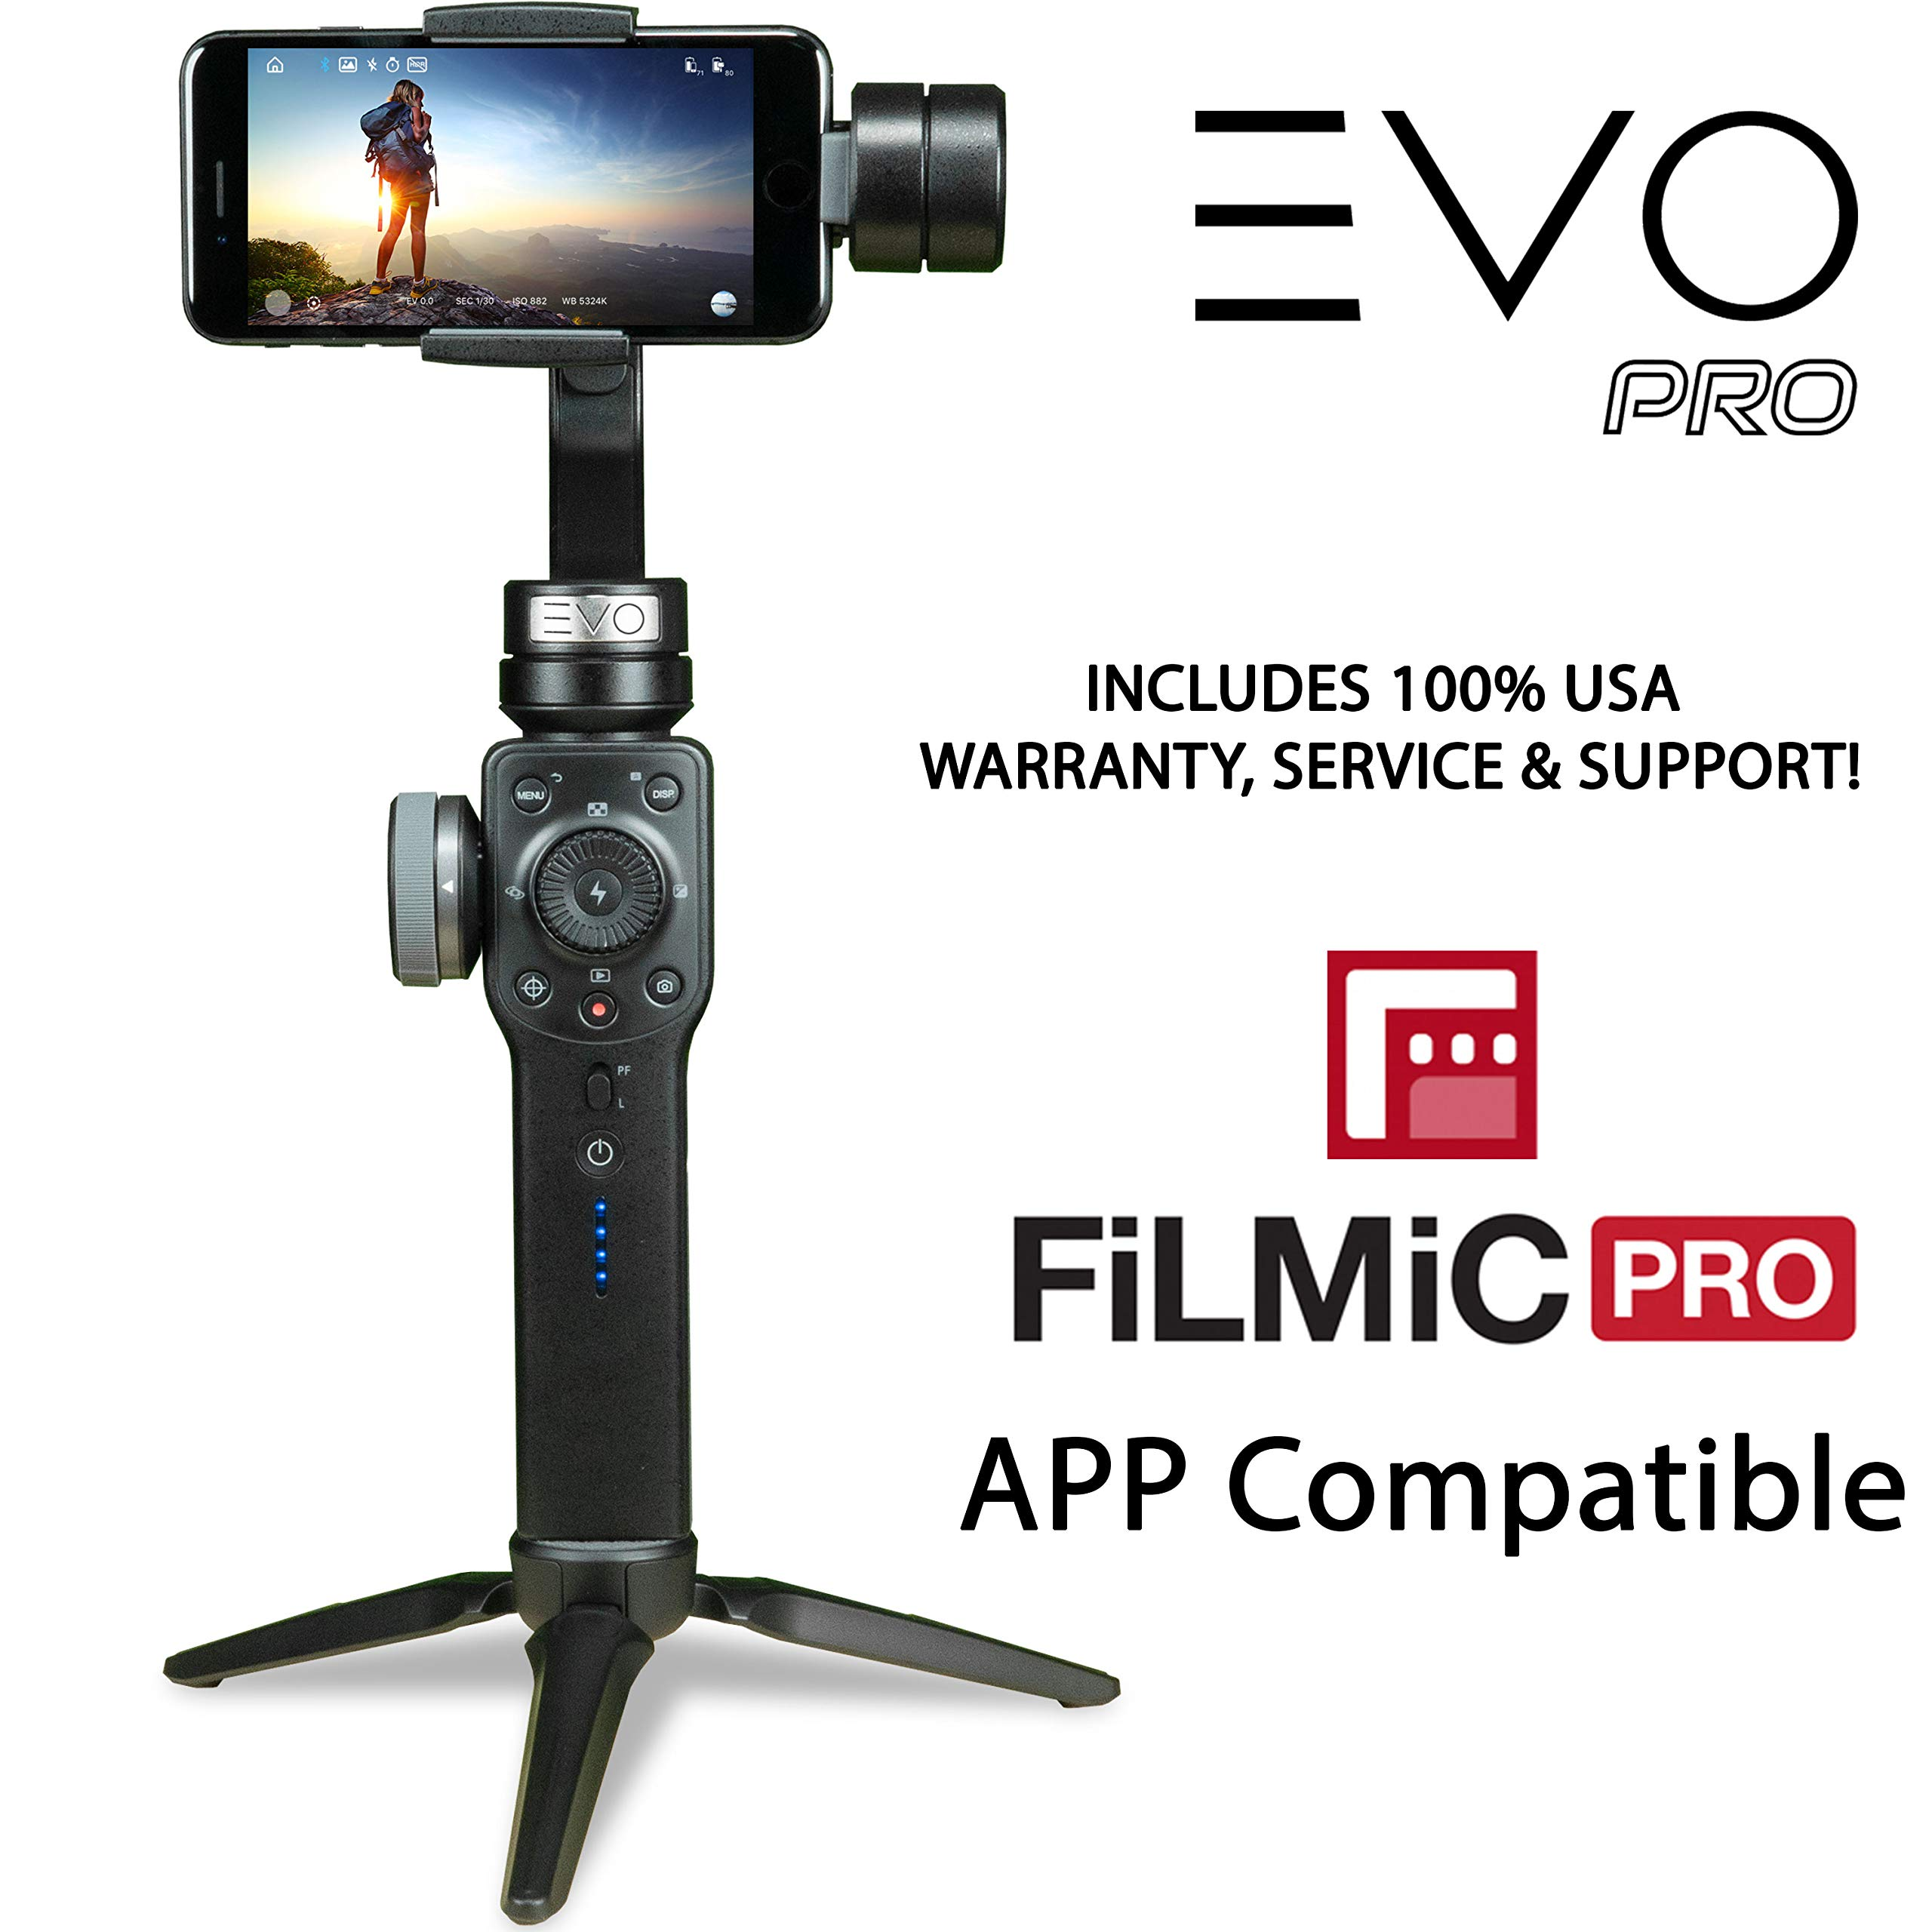 EVO PRO Smartphone Camera Stabilizer with Focus Pull & Zoom - Compatible with iOS iPhone & Android Smartphones | FiLMiC PRO APP Compatible | EVO Gimbals 1 Year US Warranty & Support